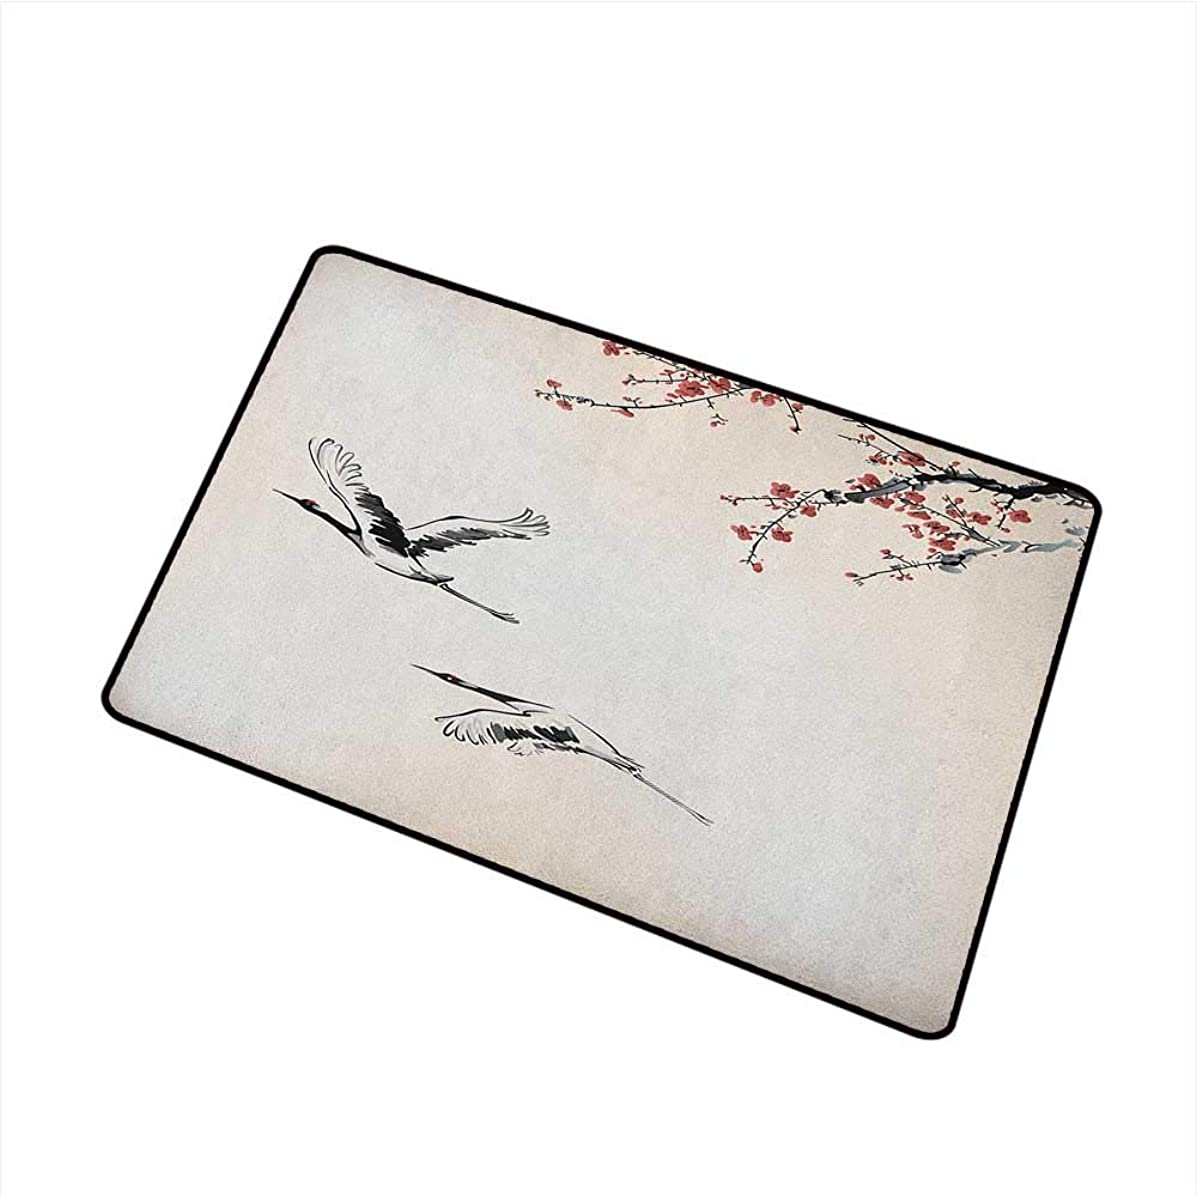 Wang Hai Chuan Birds Universal Door mat Branches of Japanese Cherry Tree with Flying Swallows in The Air Spring Colors Door mat Floor Decoration W29.5 x L39.4 Inch Red Grey Ecru